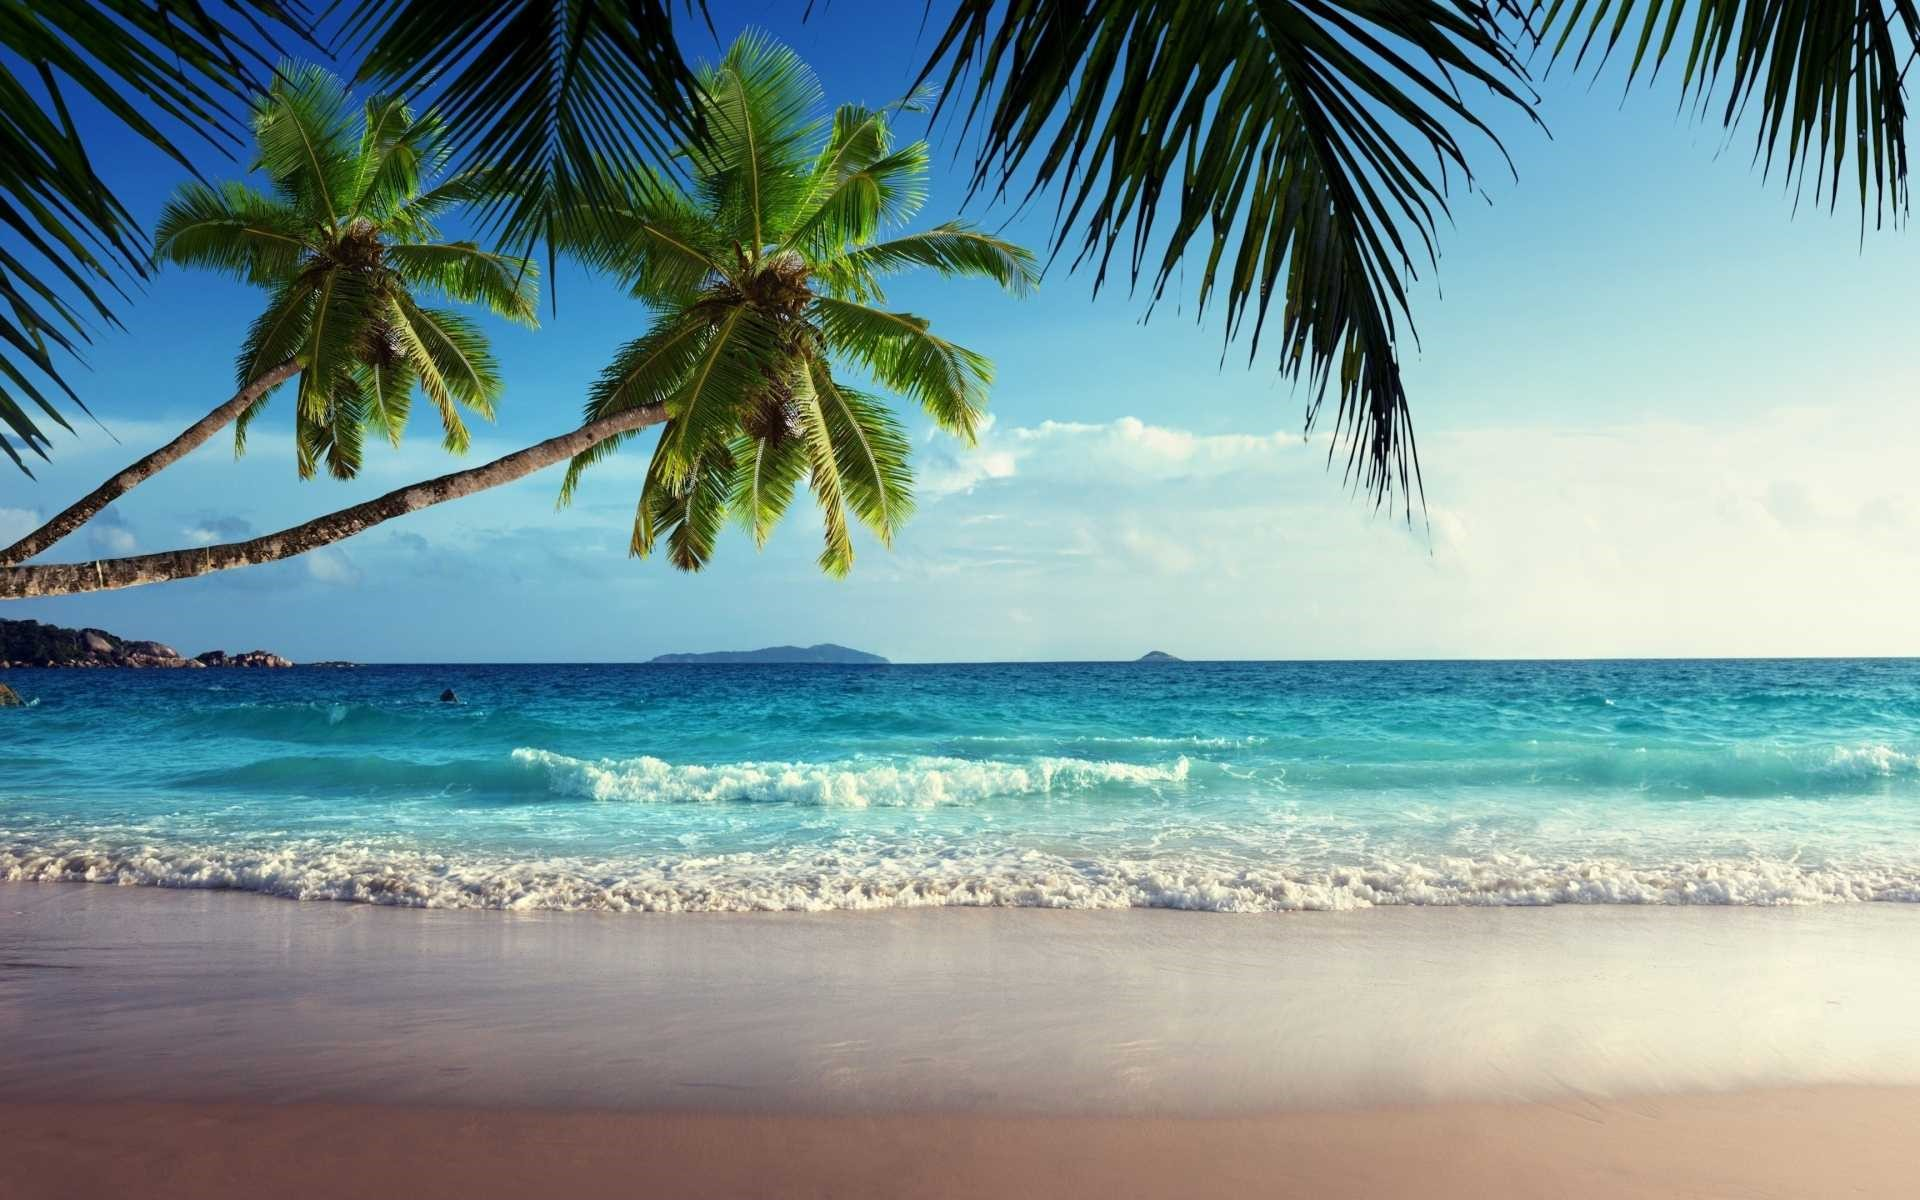 Tropical Beach Landscape Wallpaper